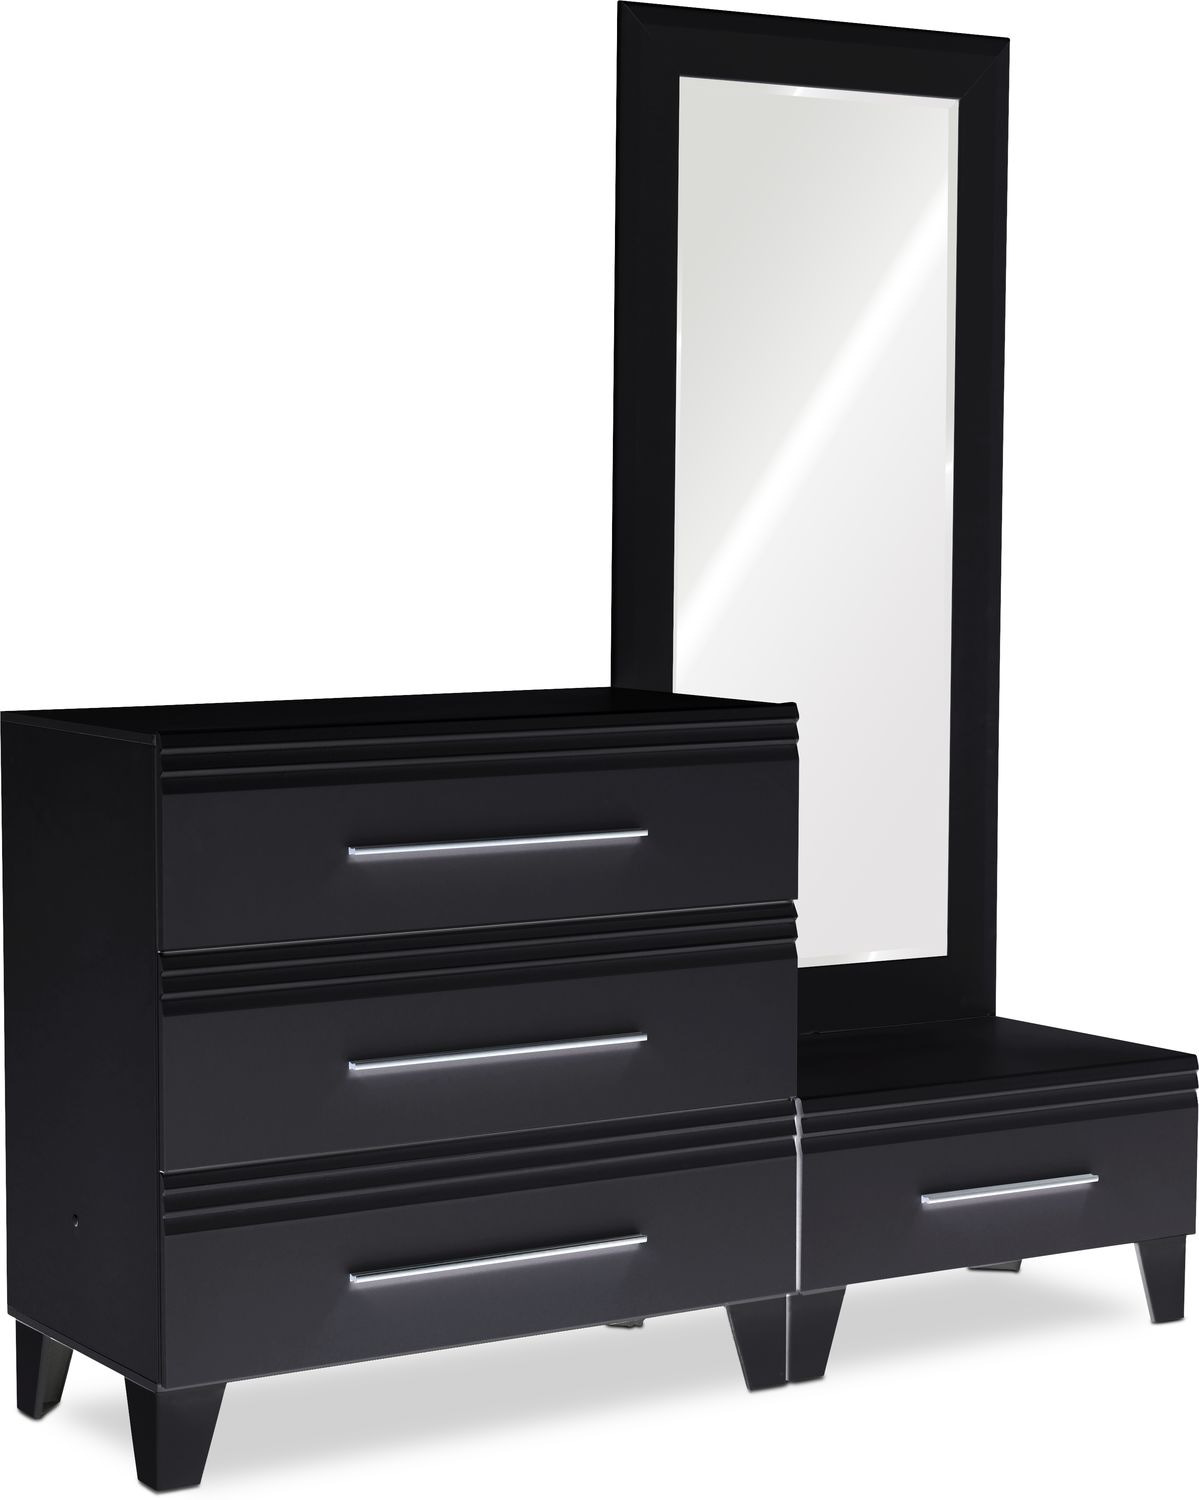 American Signature Bed Frame New Allori Chest and Dressing Mirror